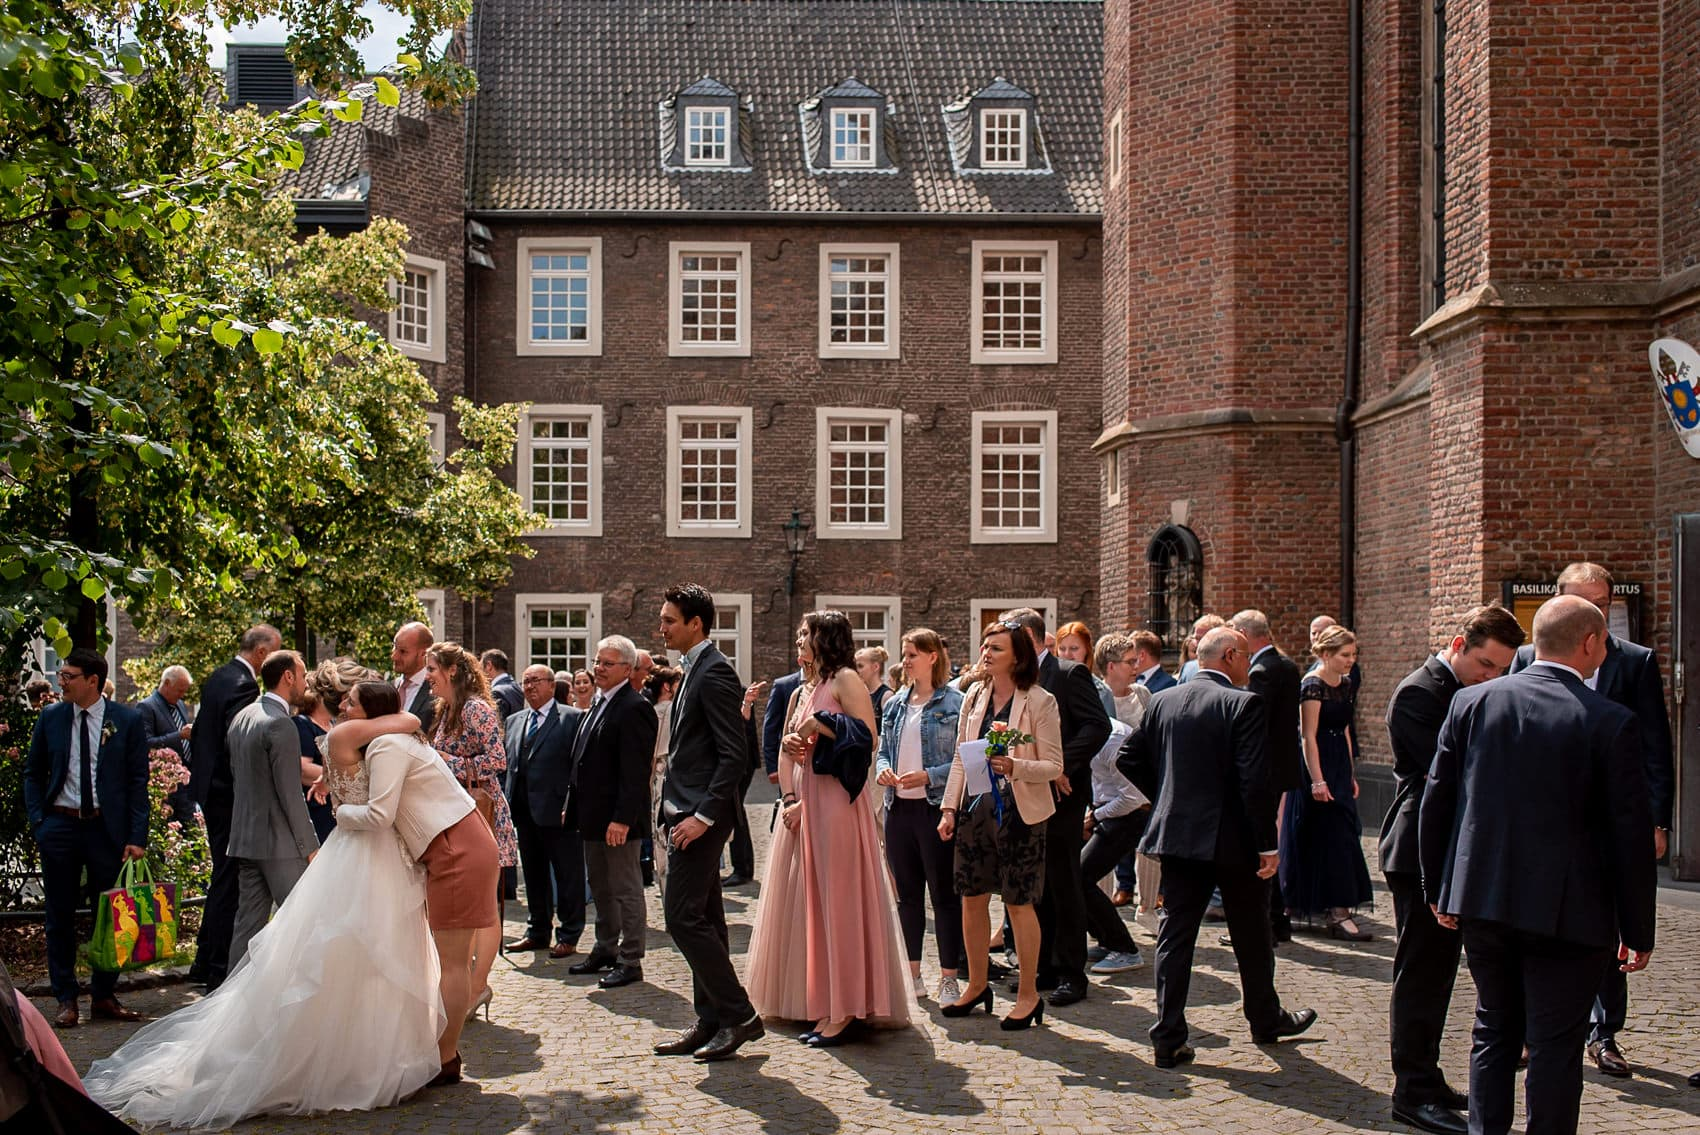 Bride hugging her guests outside the church at her Dusseldorf destination wedding